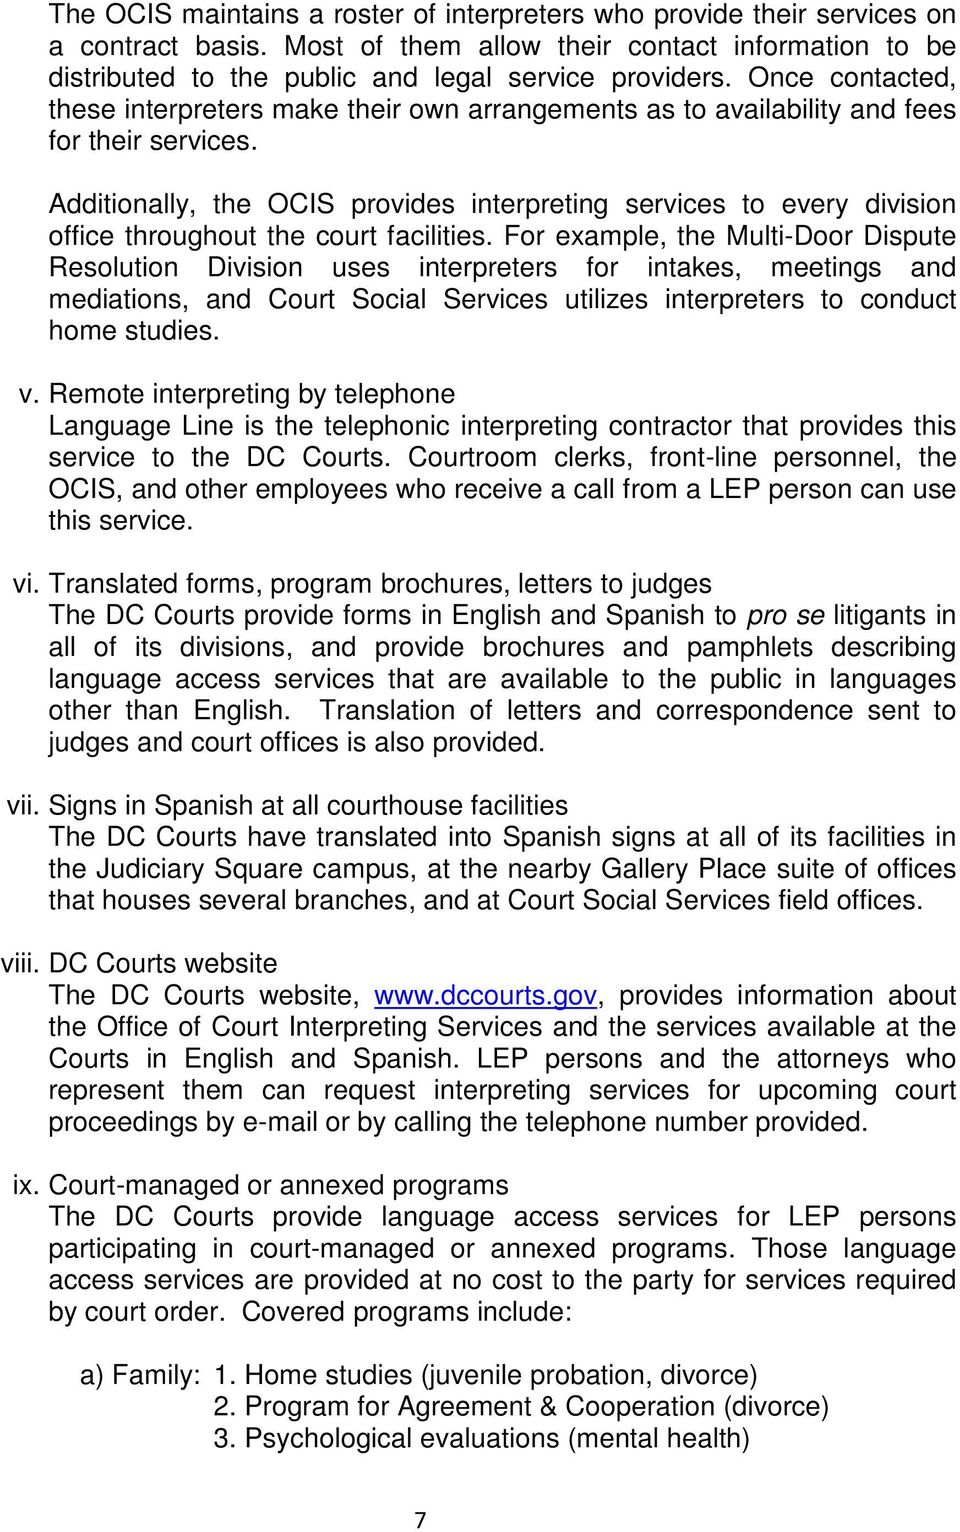 Additionally, the OCIS provides interpreting services to every division office throughout the court facilities.